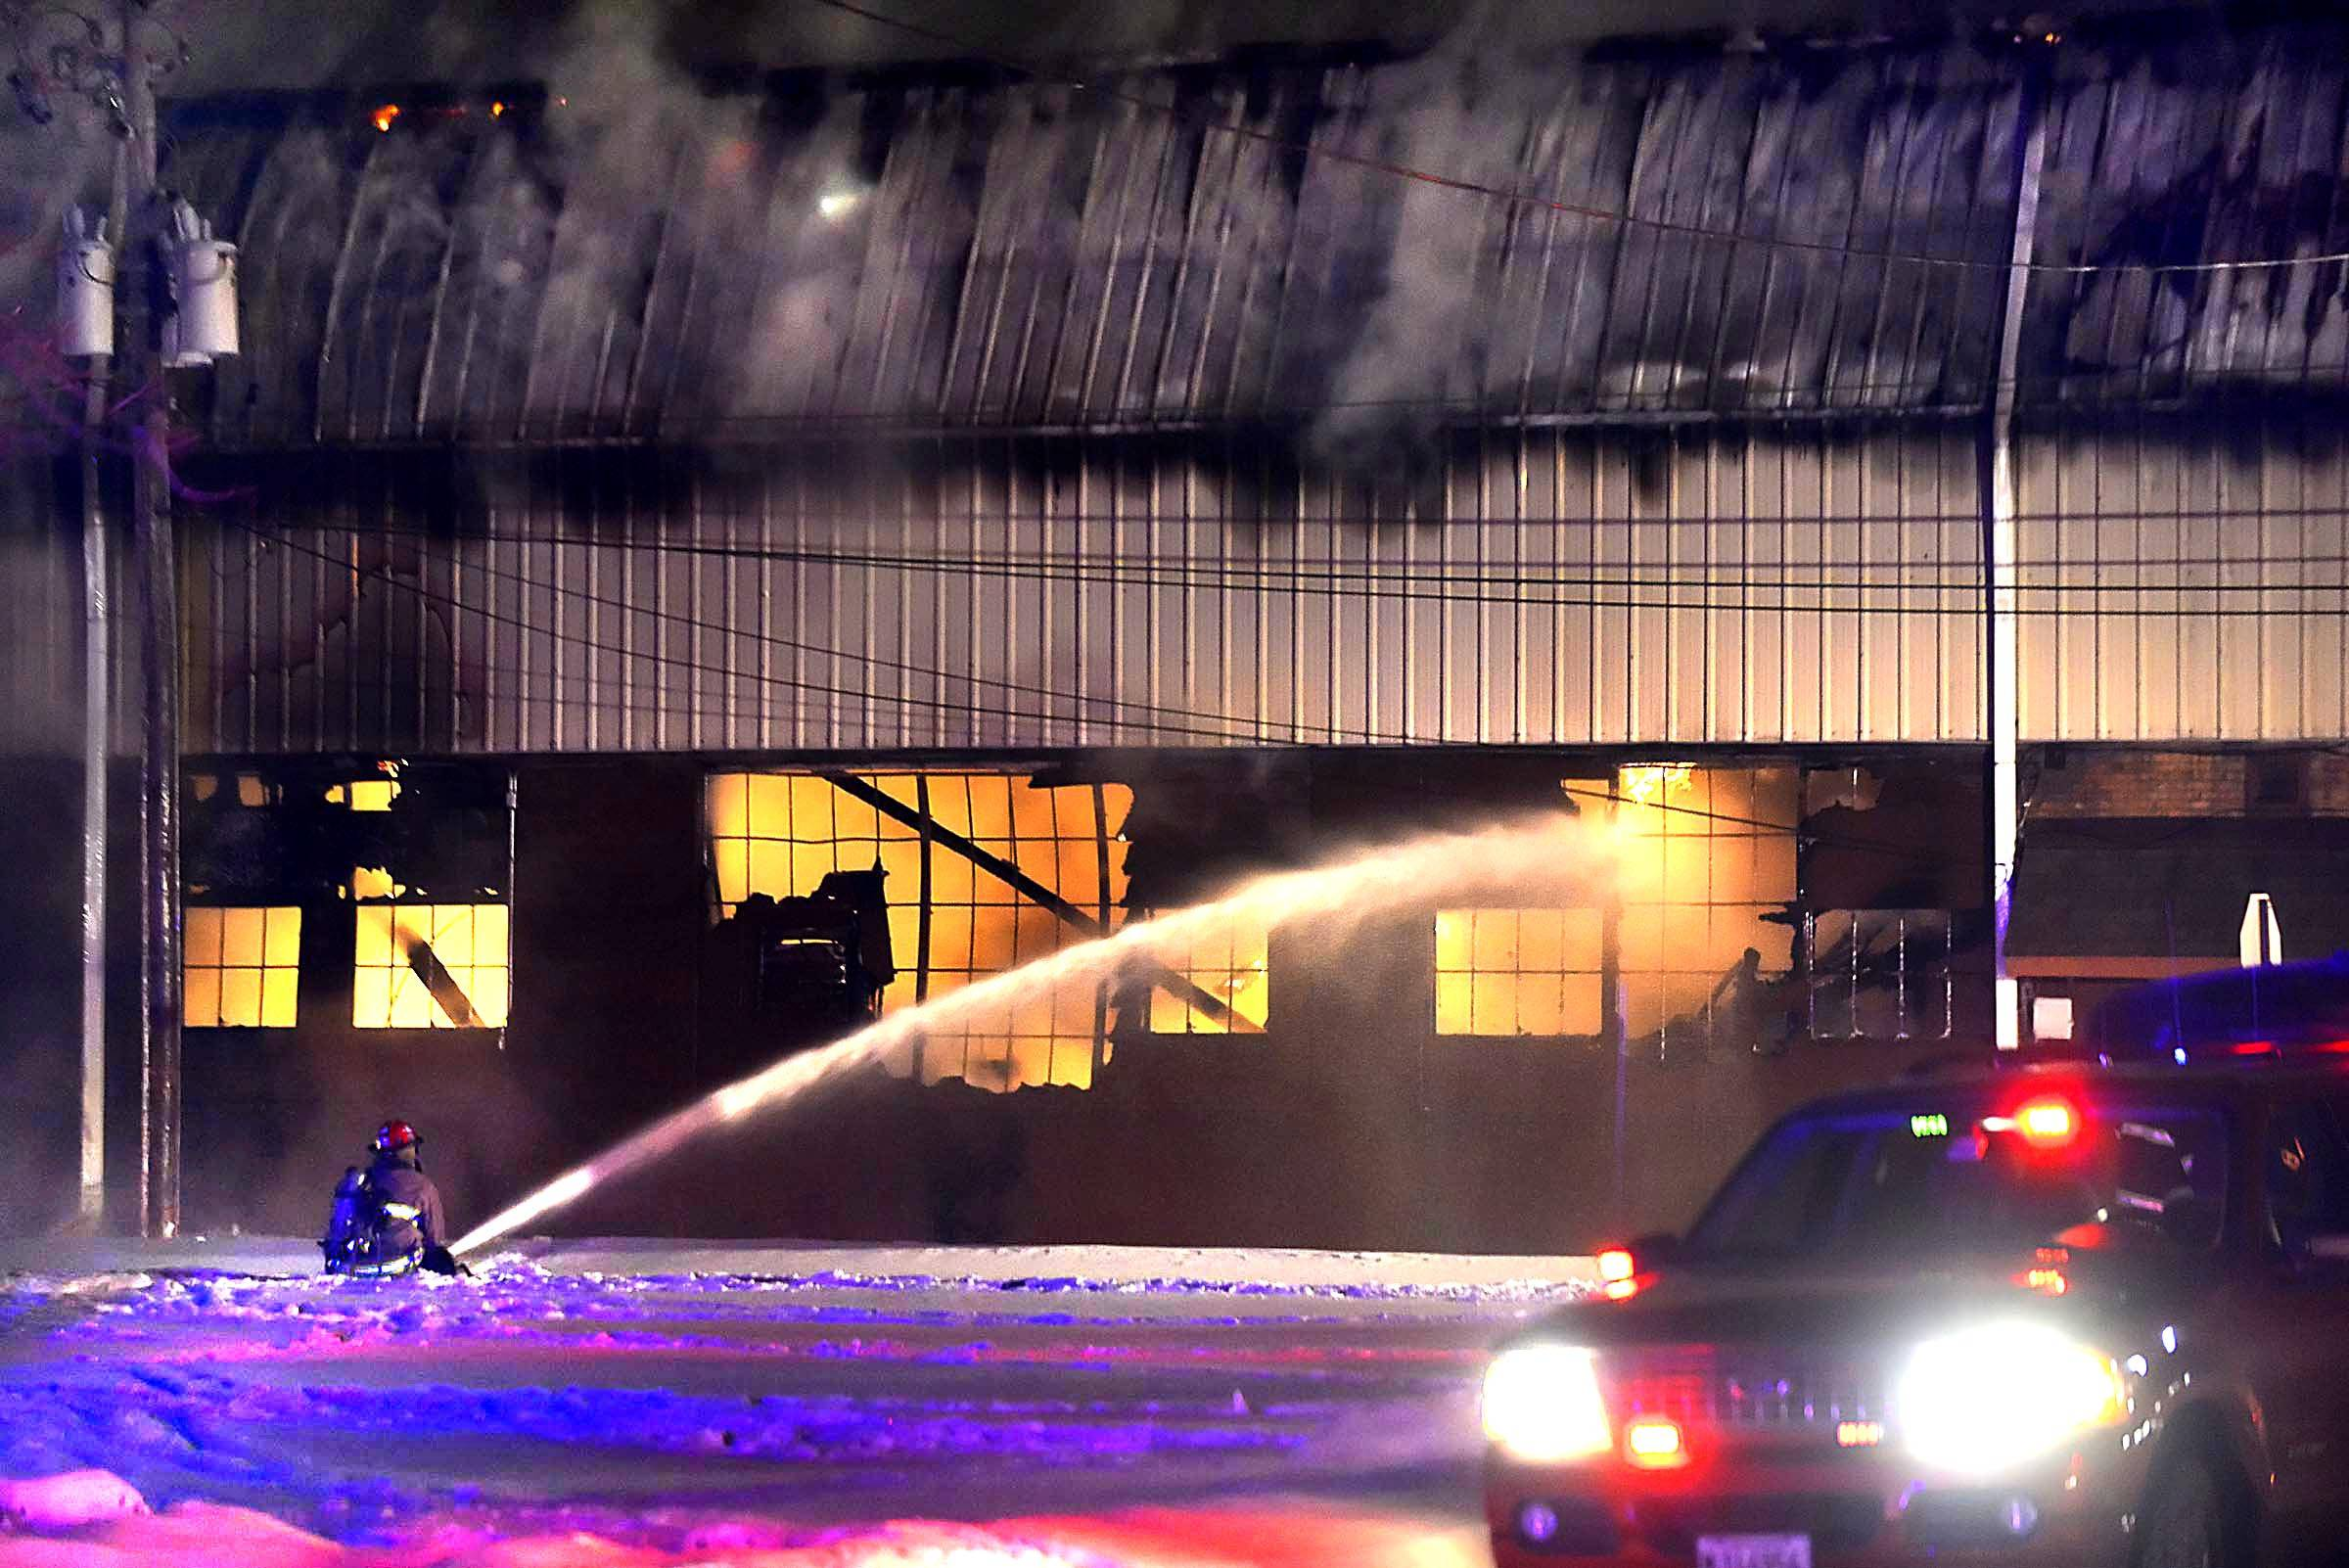 Batavia foundry burns in big blaze late at night